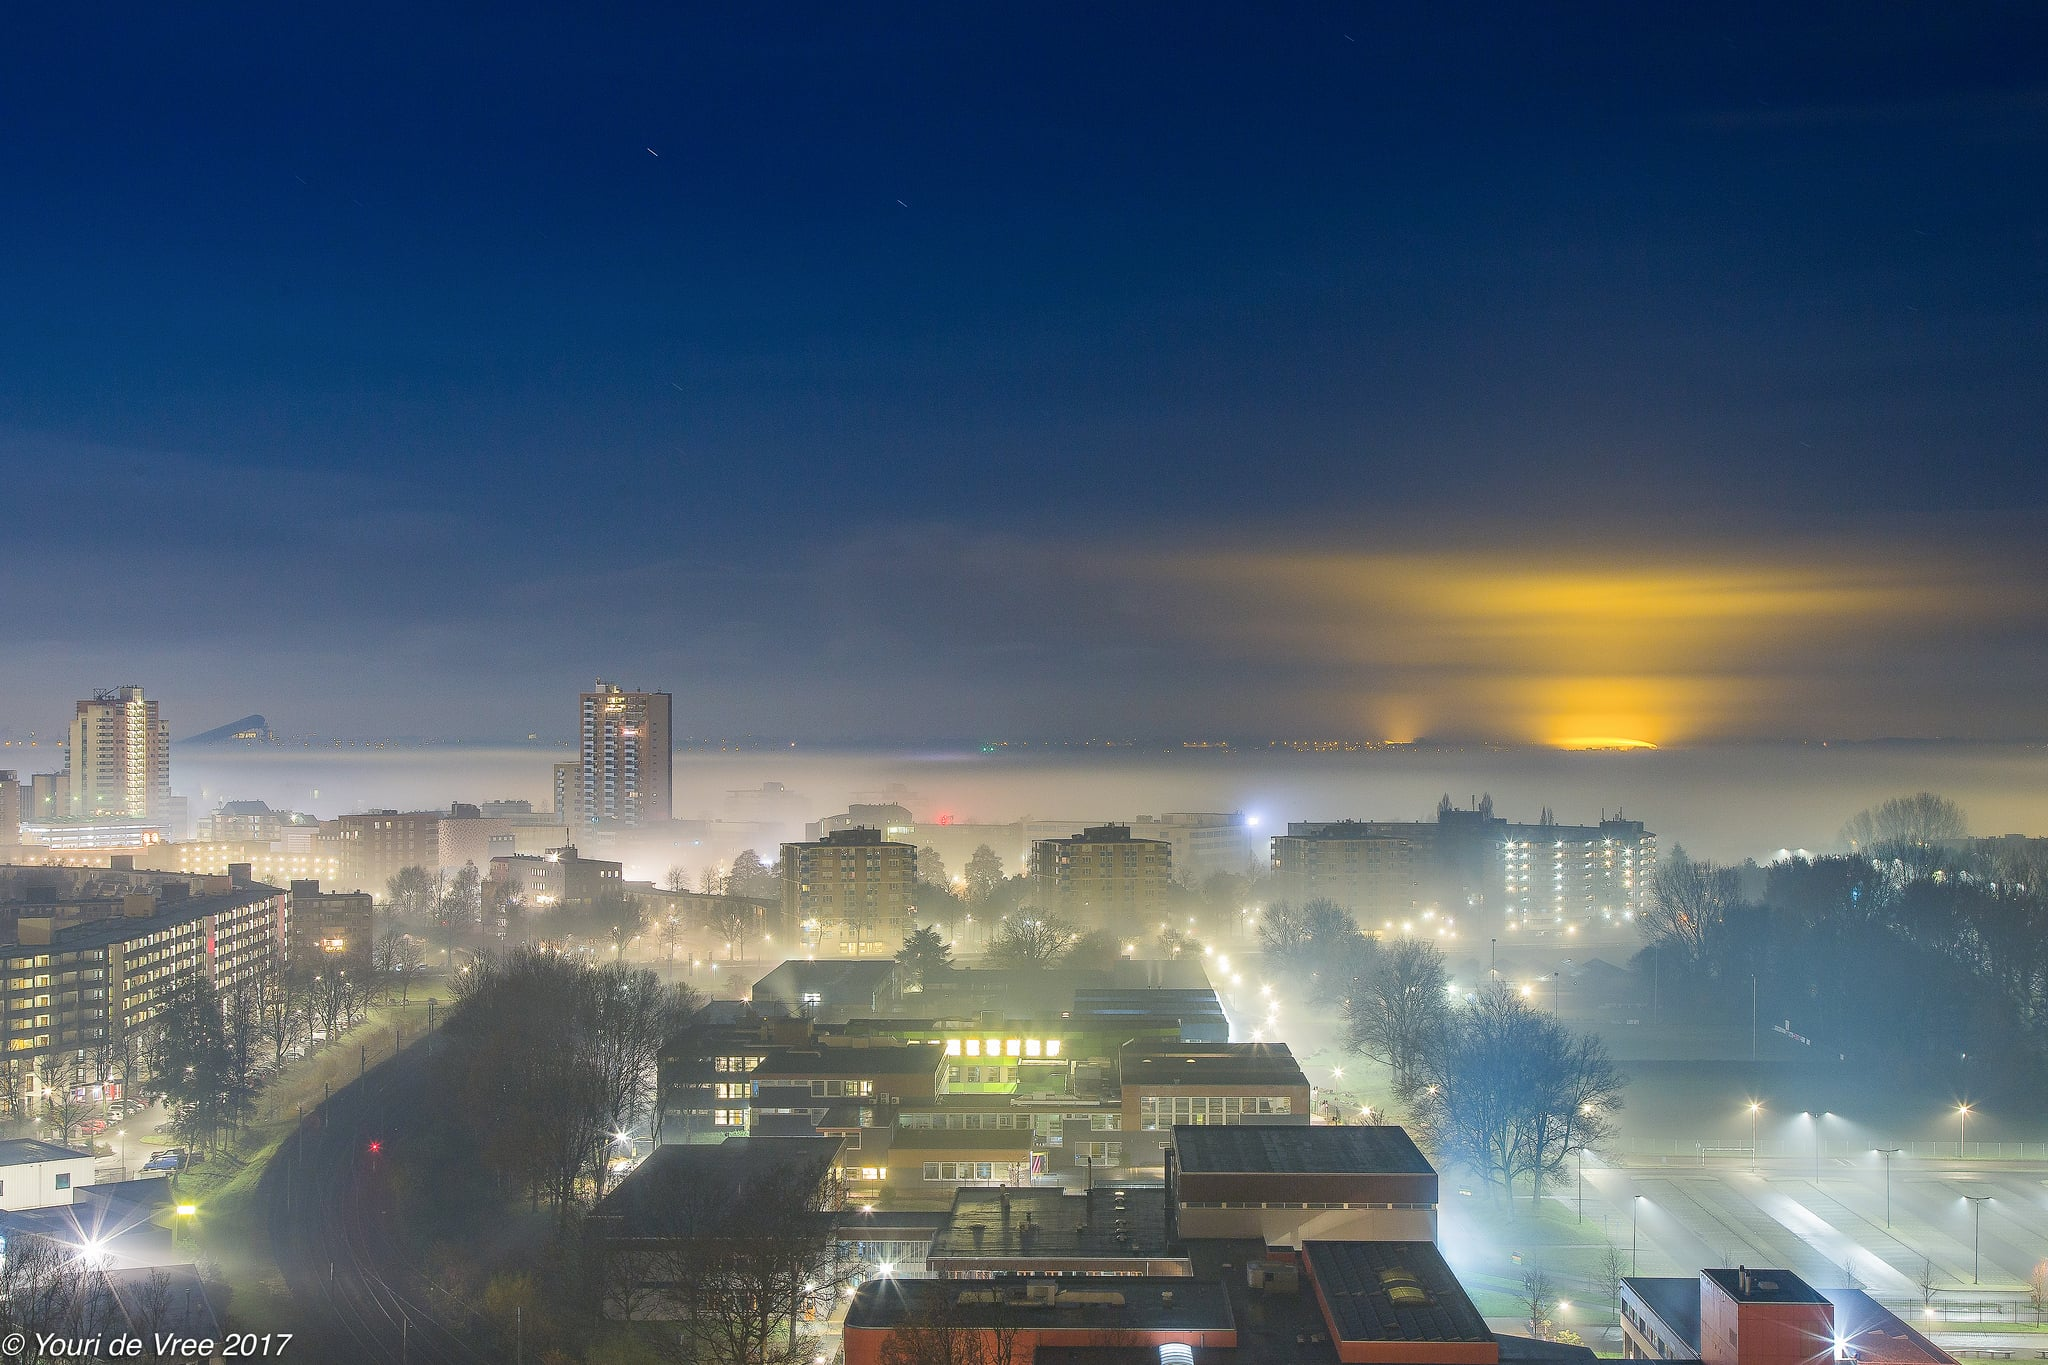 6 Landscapes In The Fog Ducks Scotland Night City Two